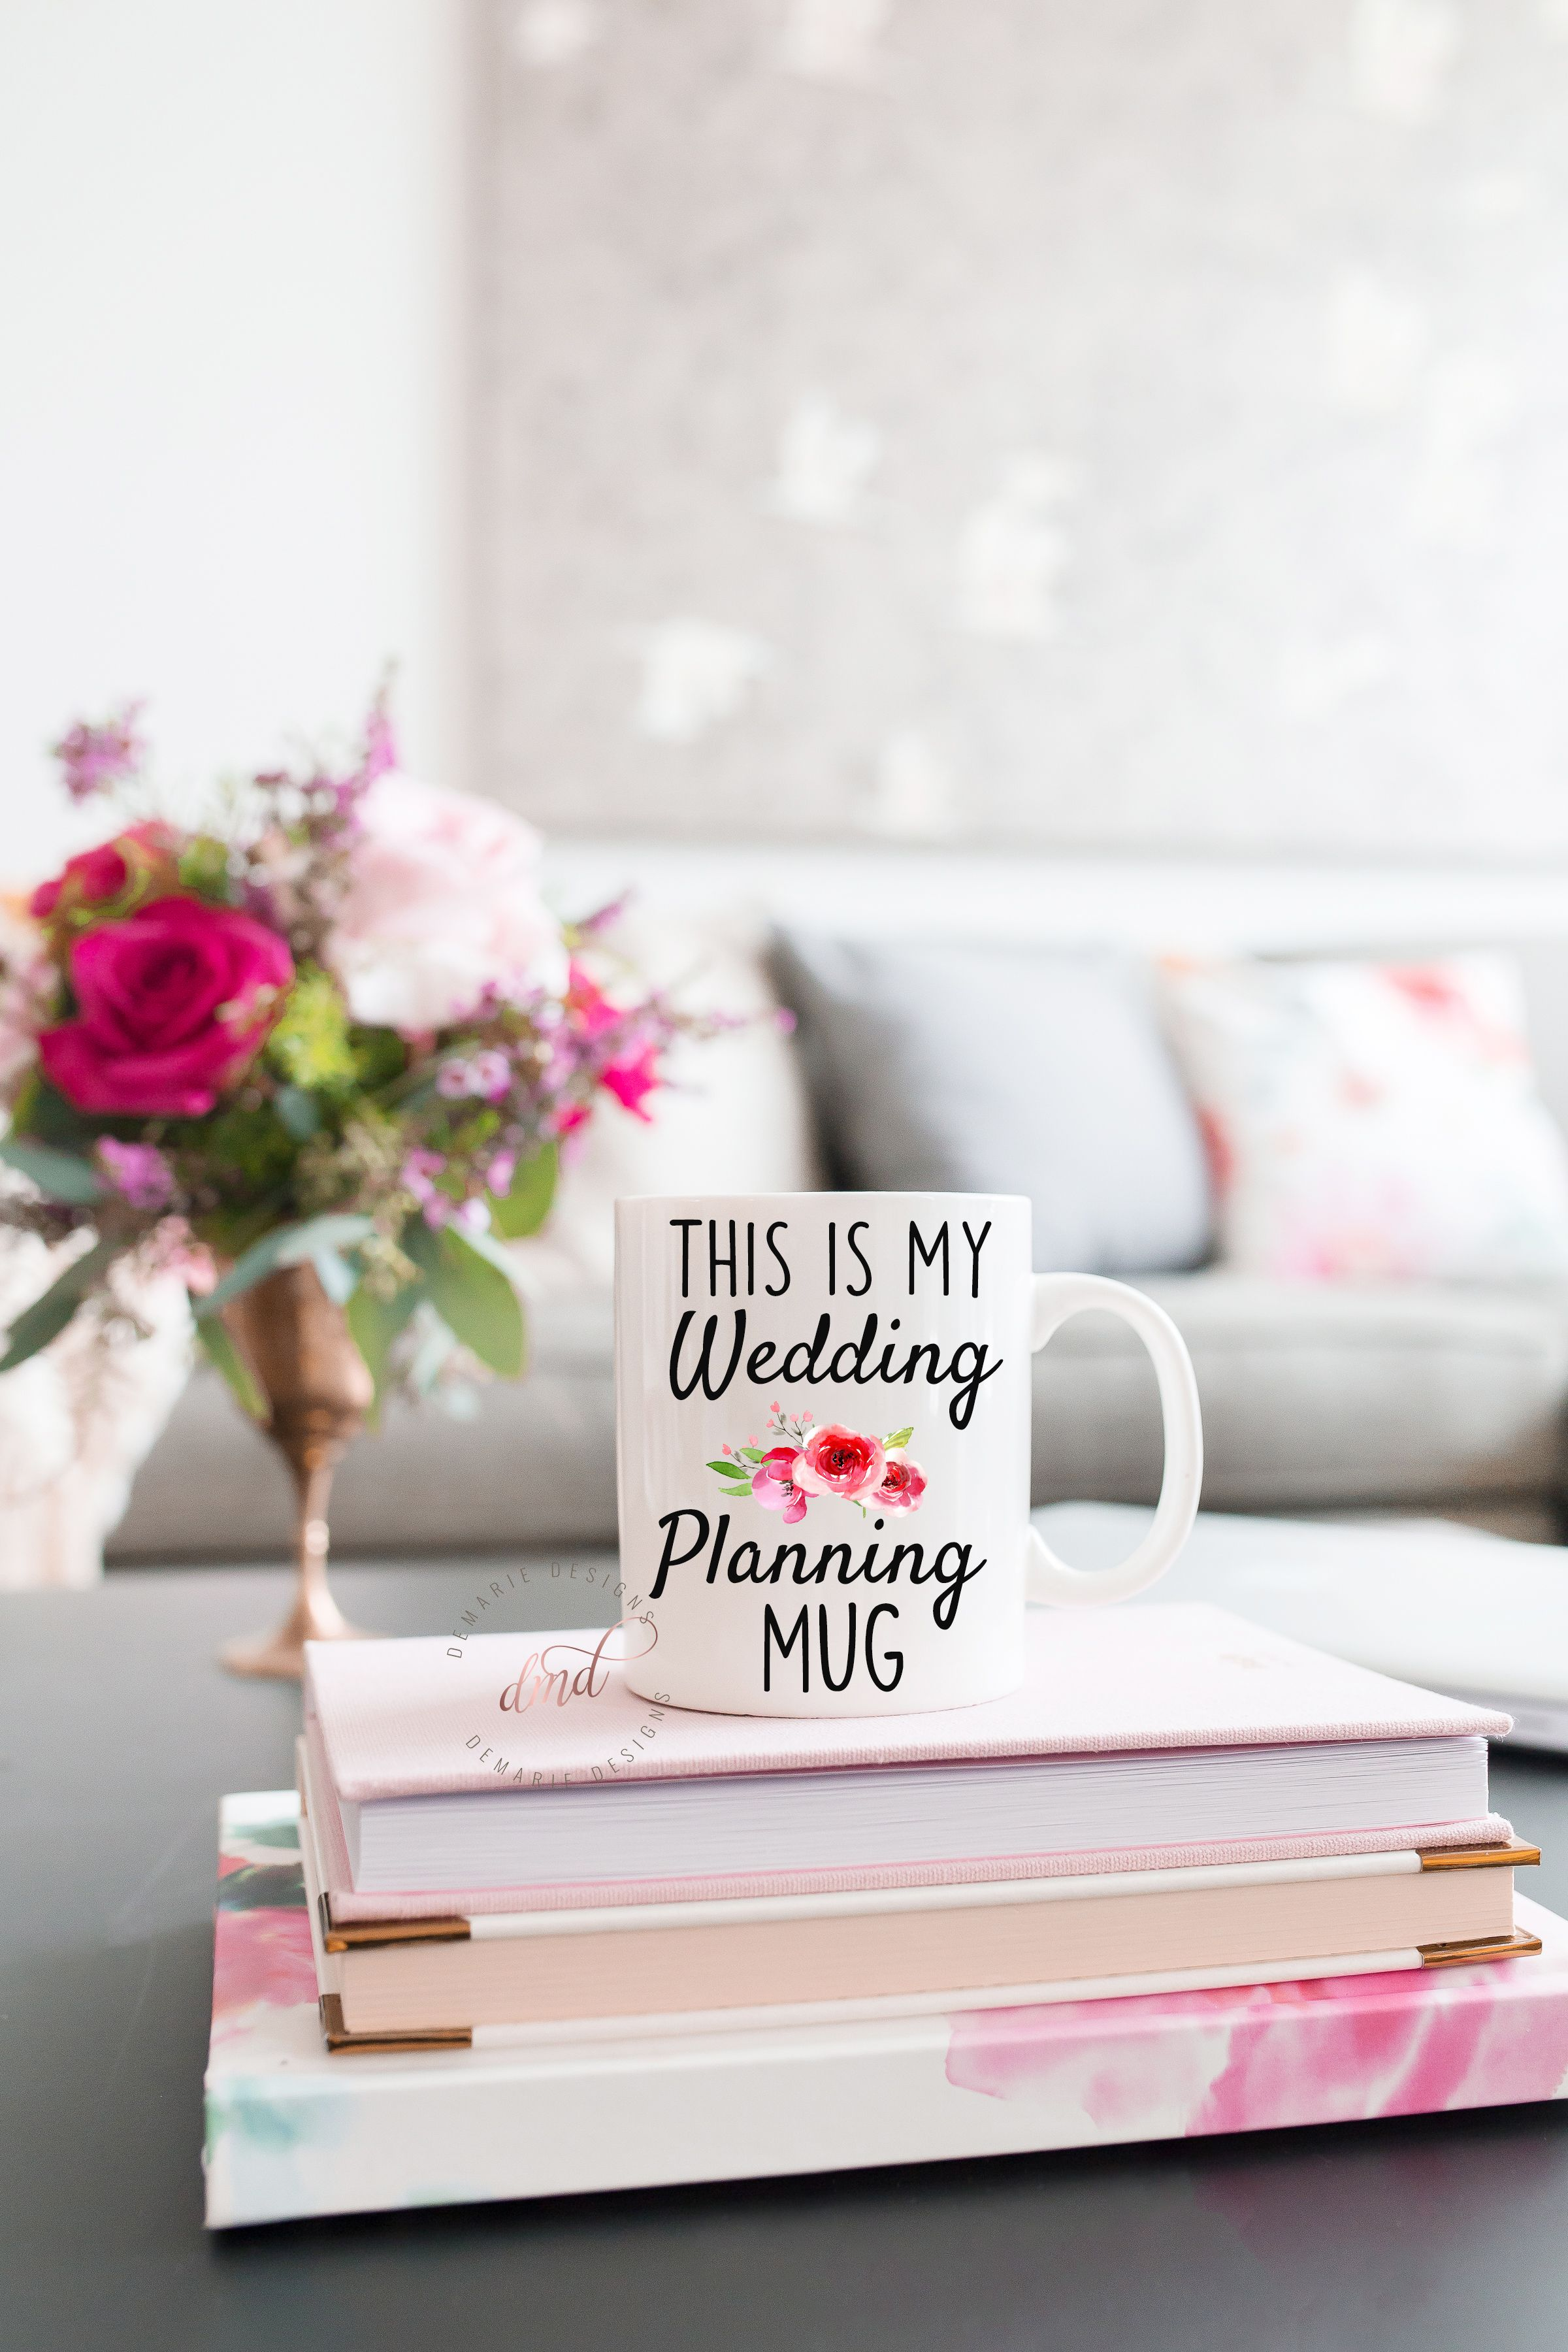 Bride Mug Bride Gift Wedding Planning Mug Wedding Planning